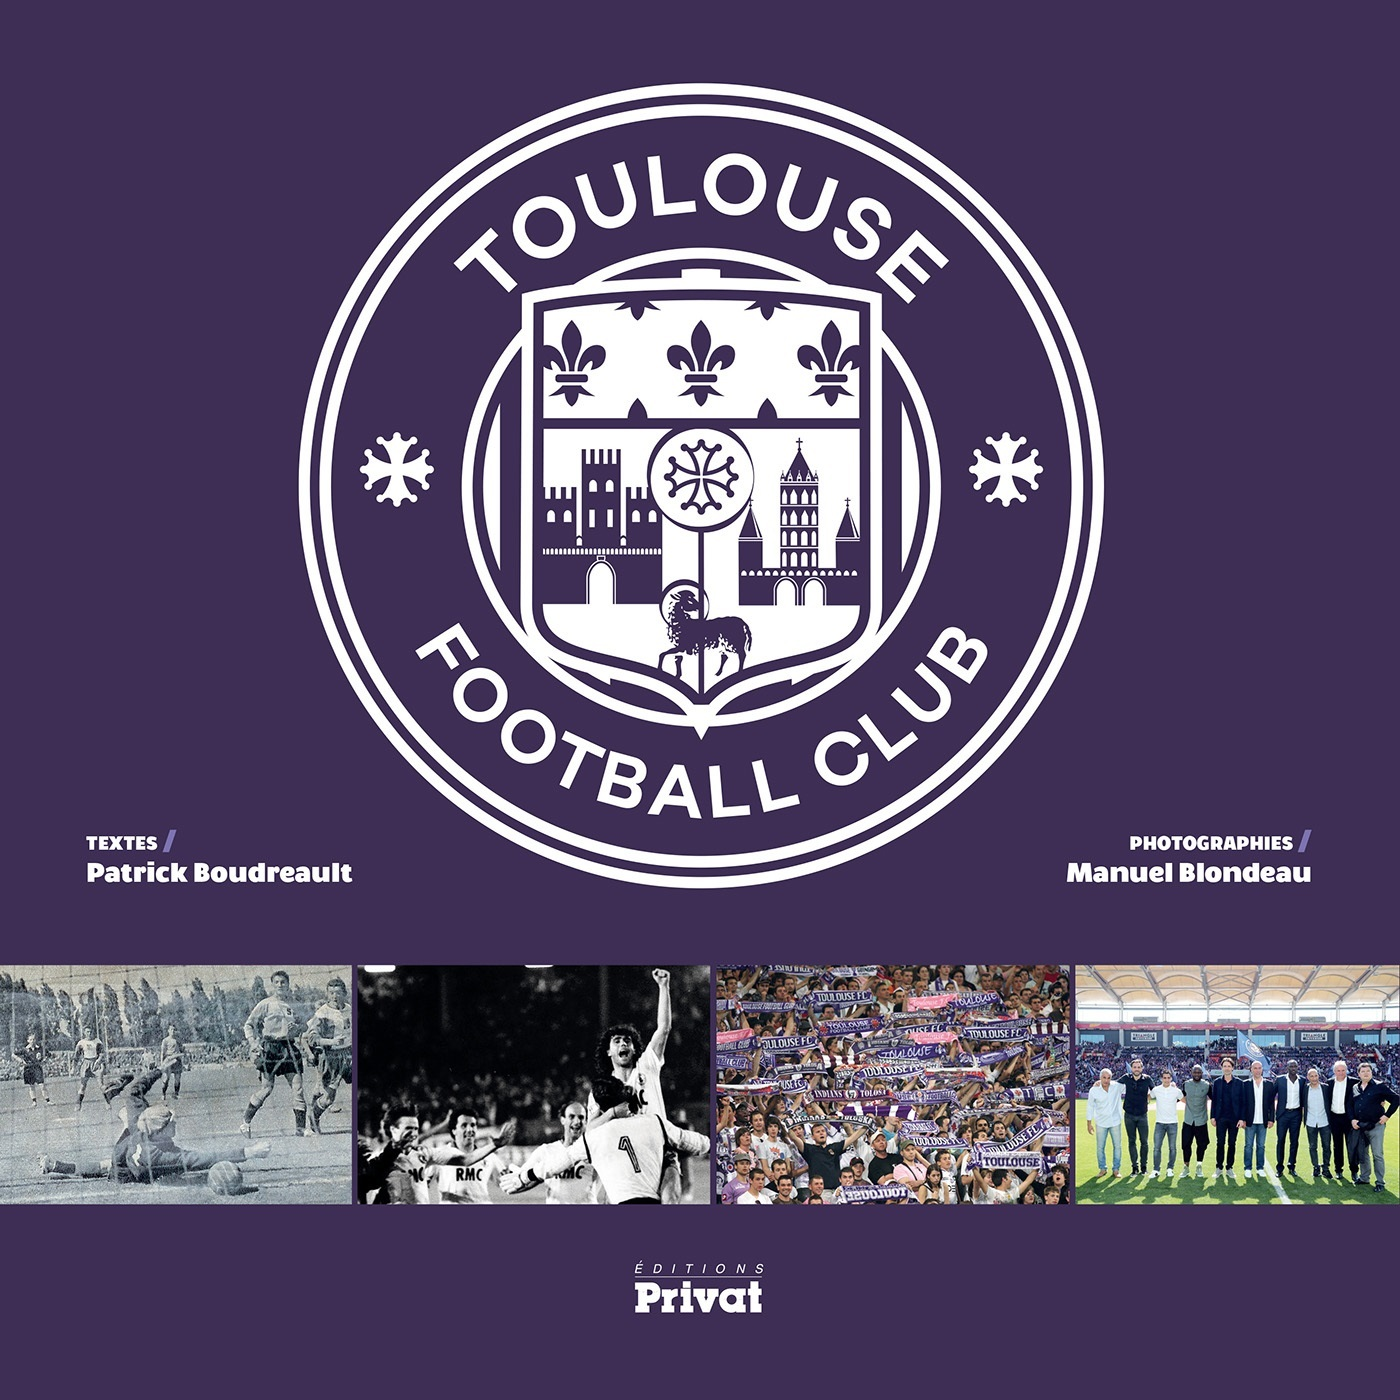 TOULOUSE FOOTBALL CLUB - SES 80 ANS